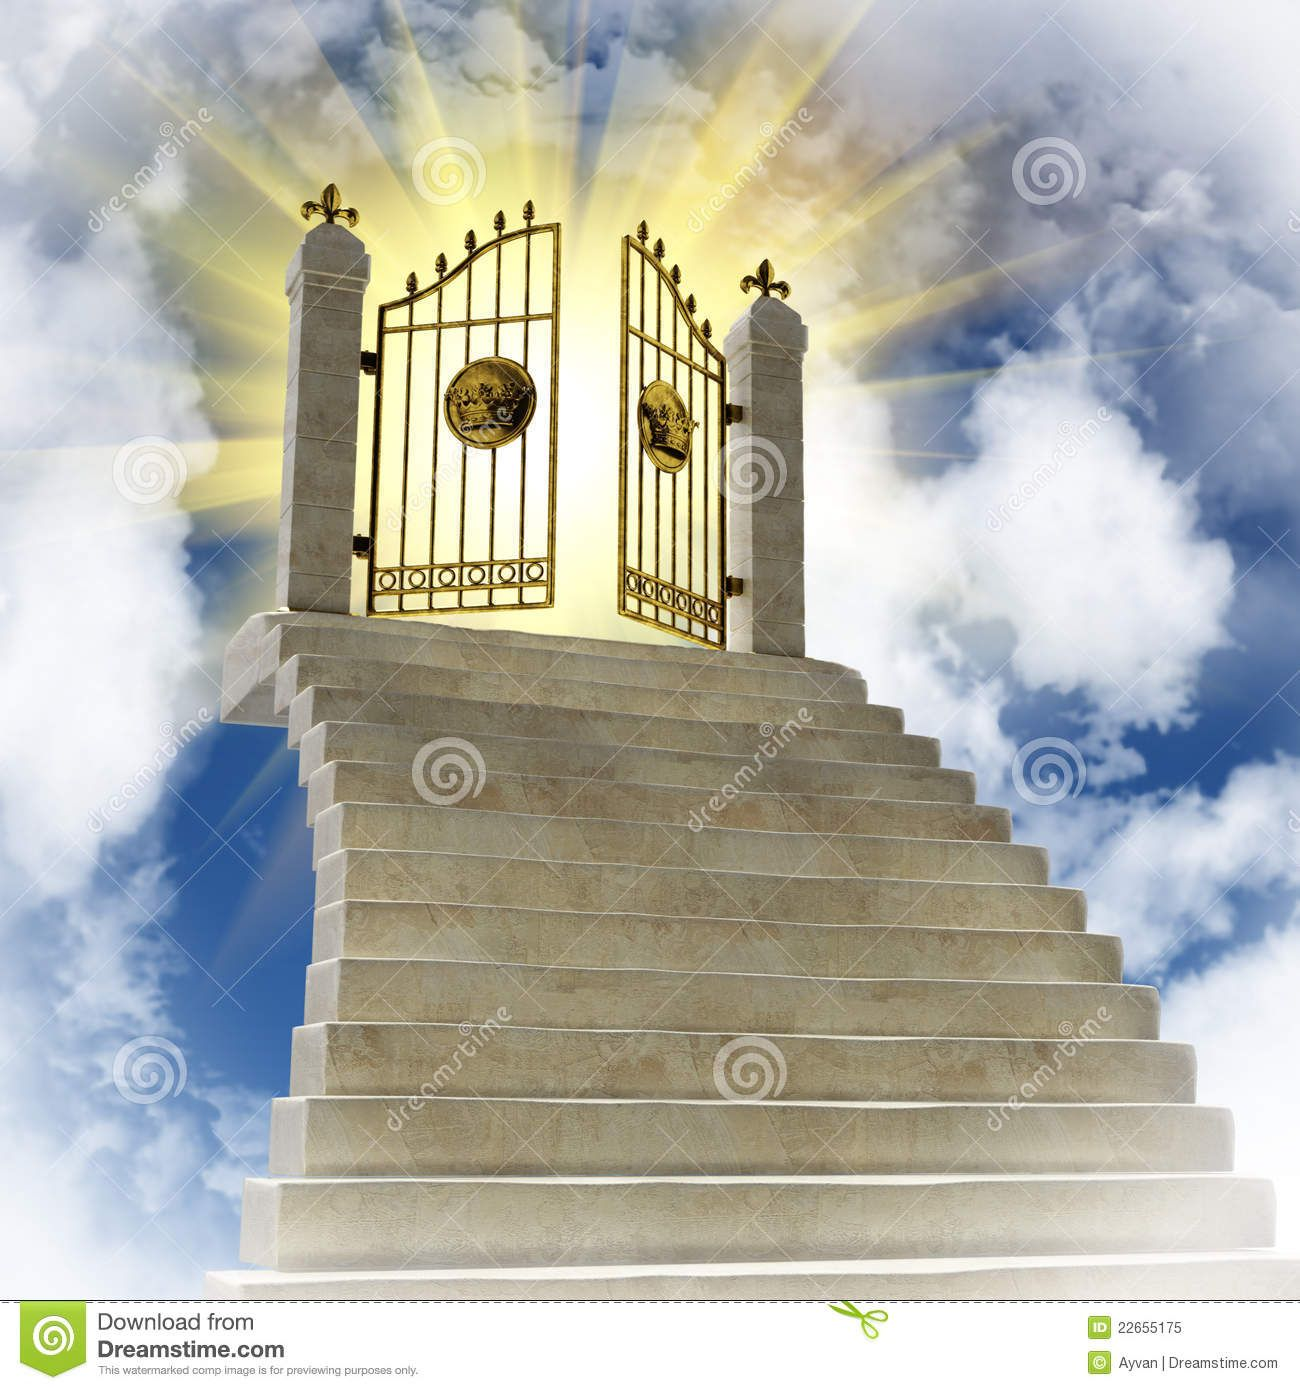 Pearly Gates Of Heaven Clipart The Gates Of Paradise In ... Pearly Gates Of Heaven Clipart